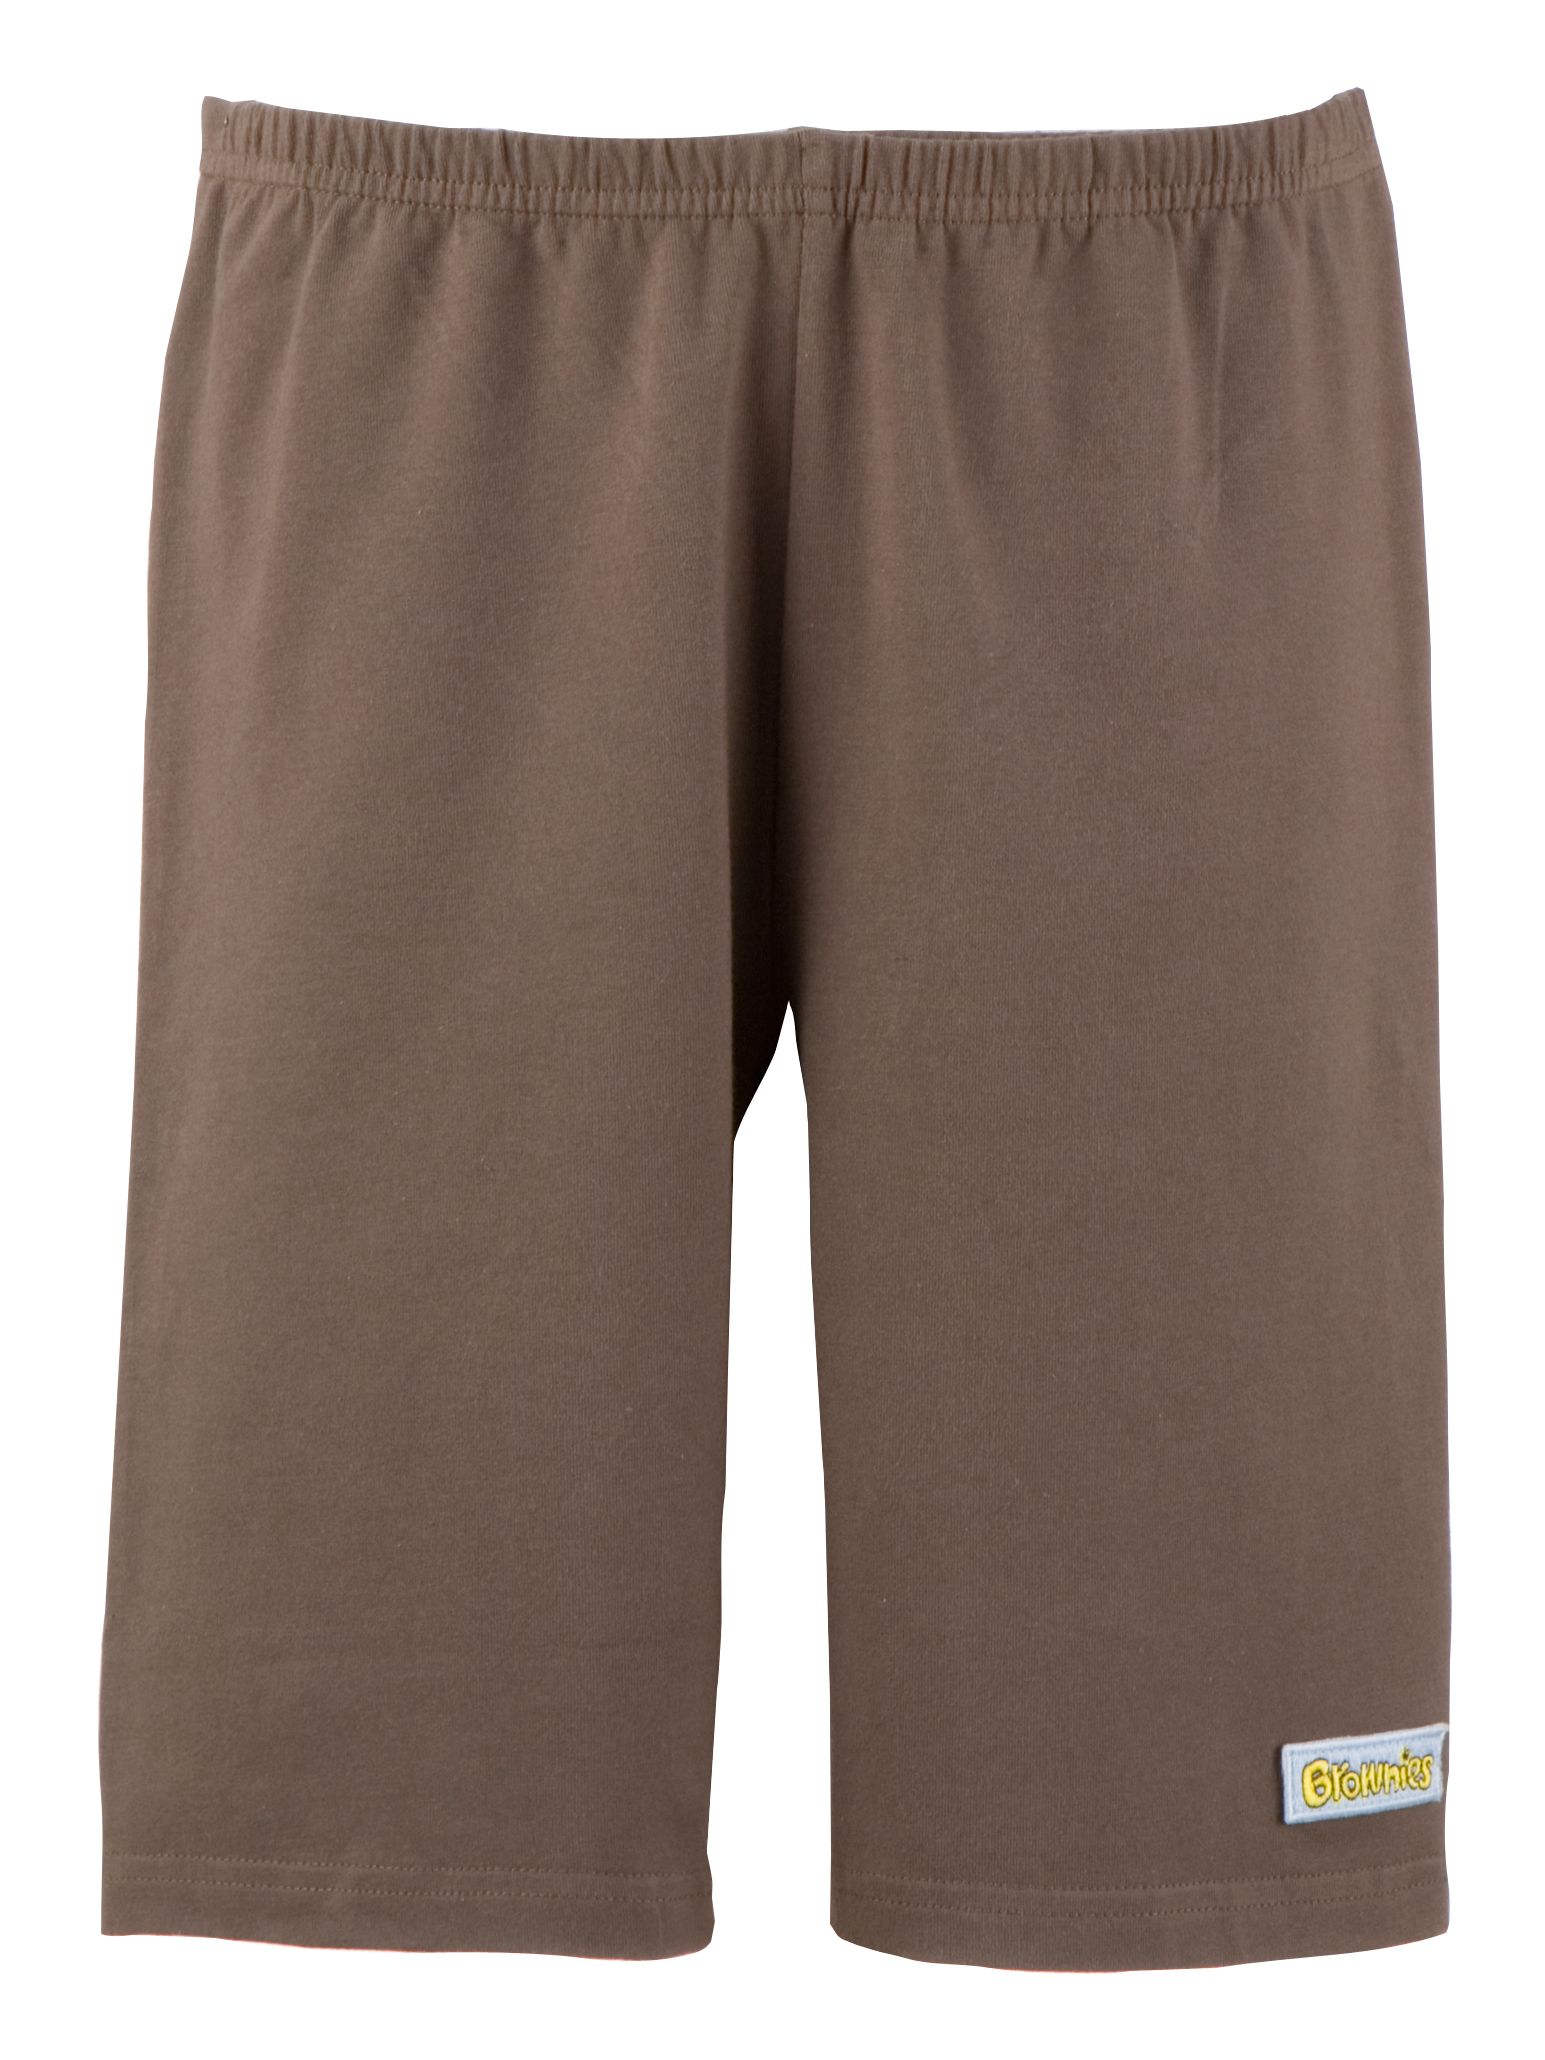 Brownies Brownies Uniform Cycle Shorts, Brown